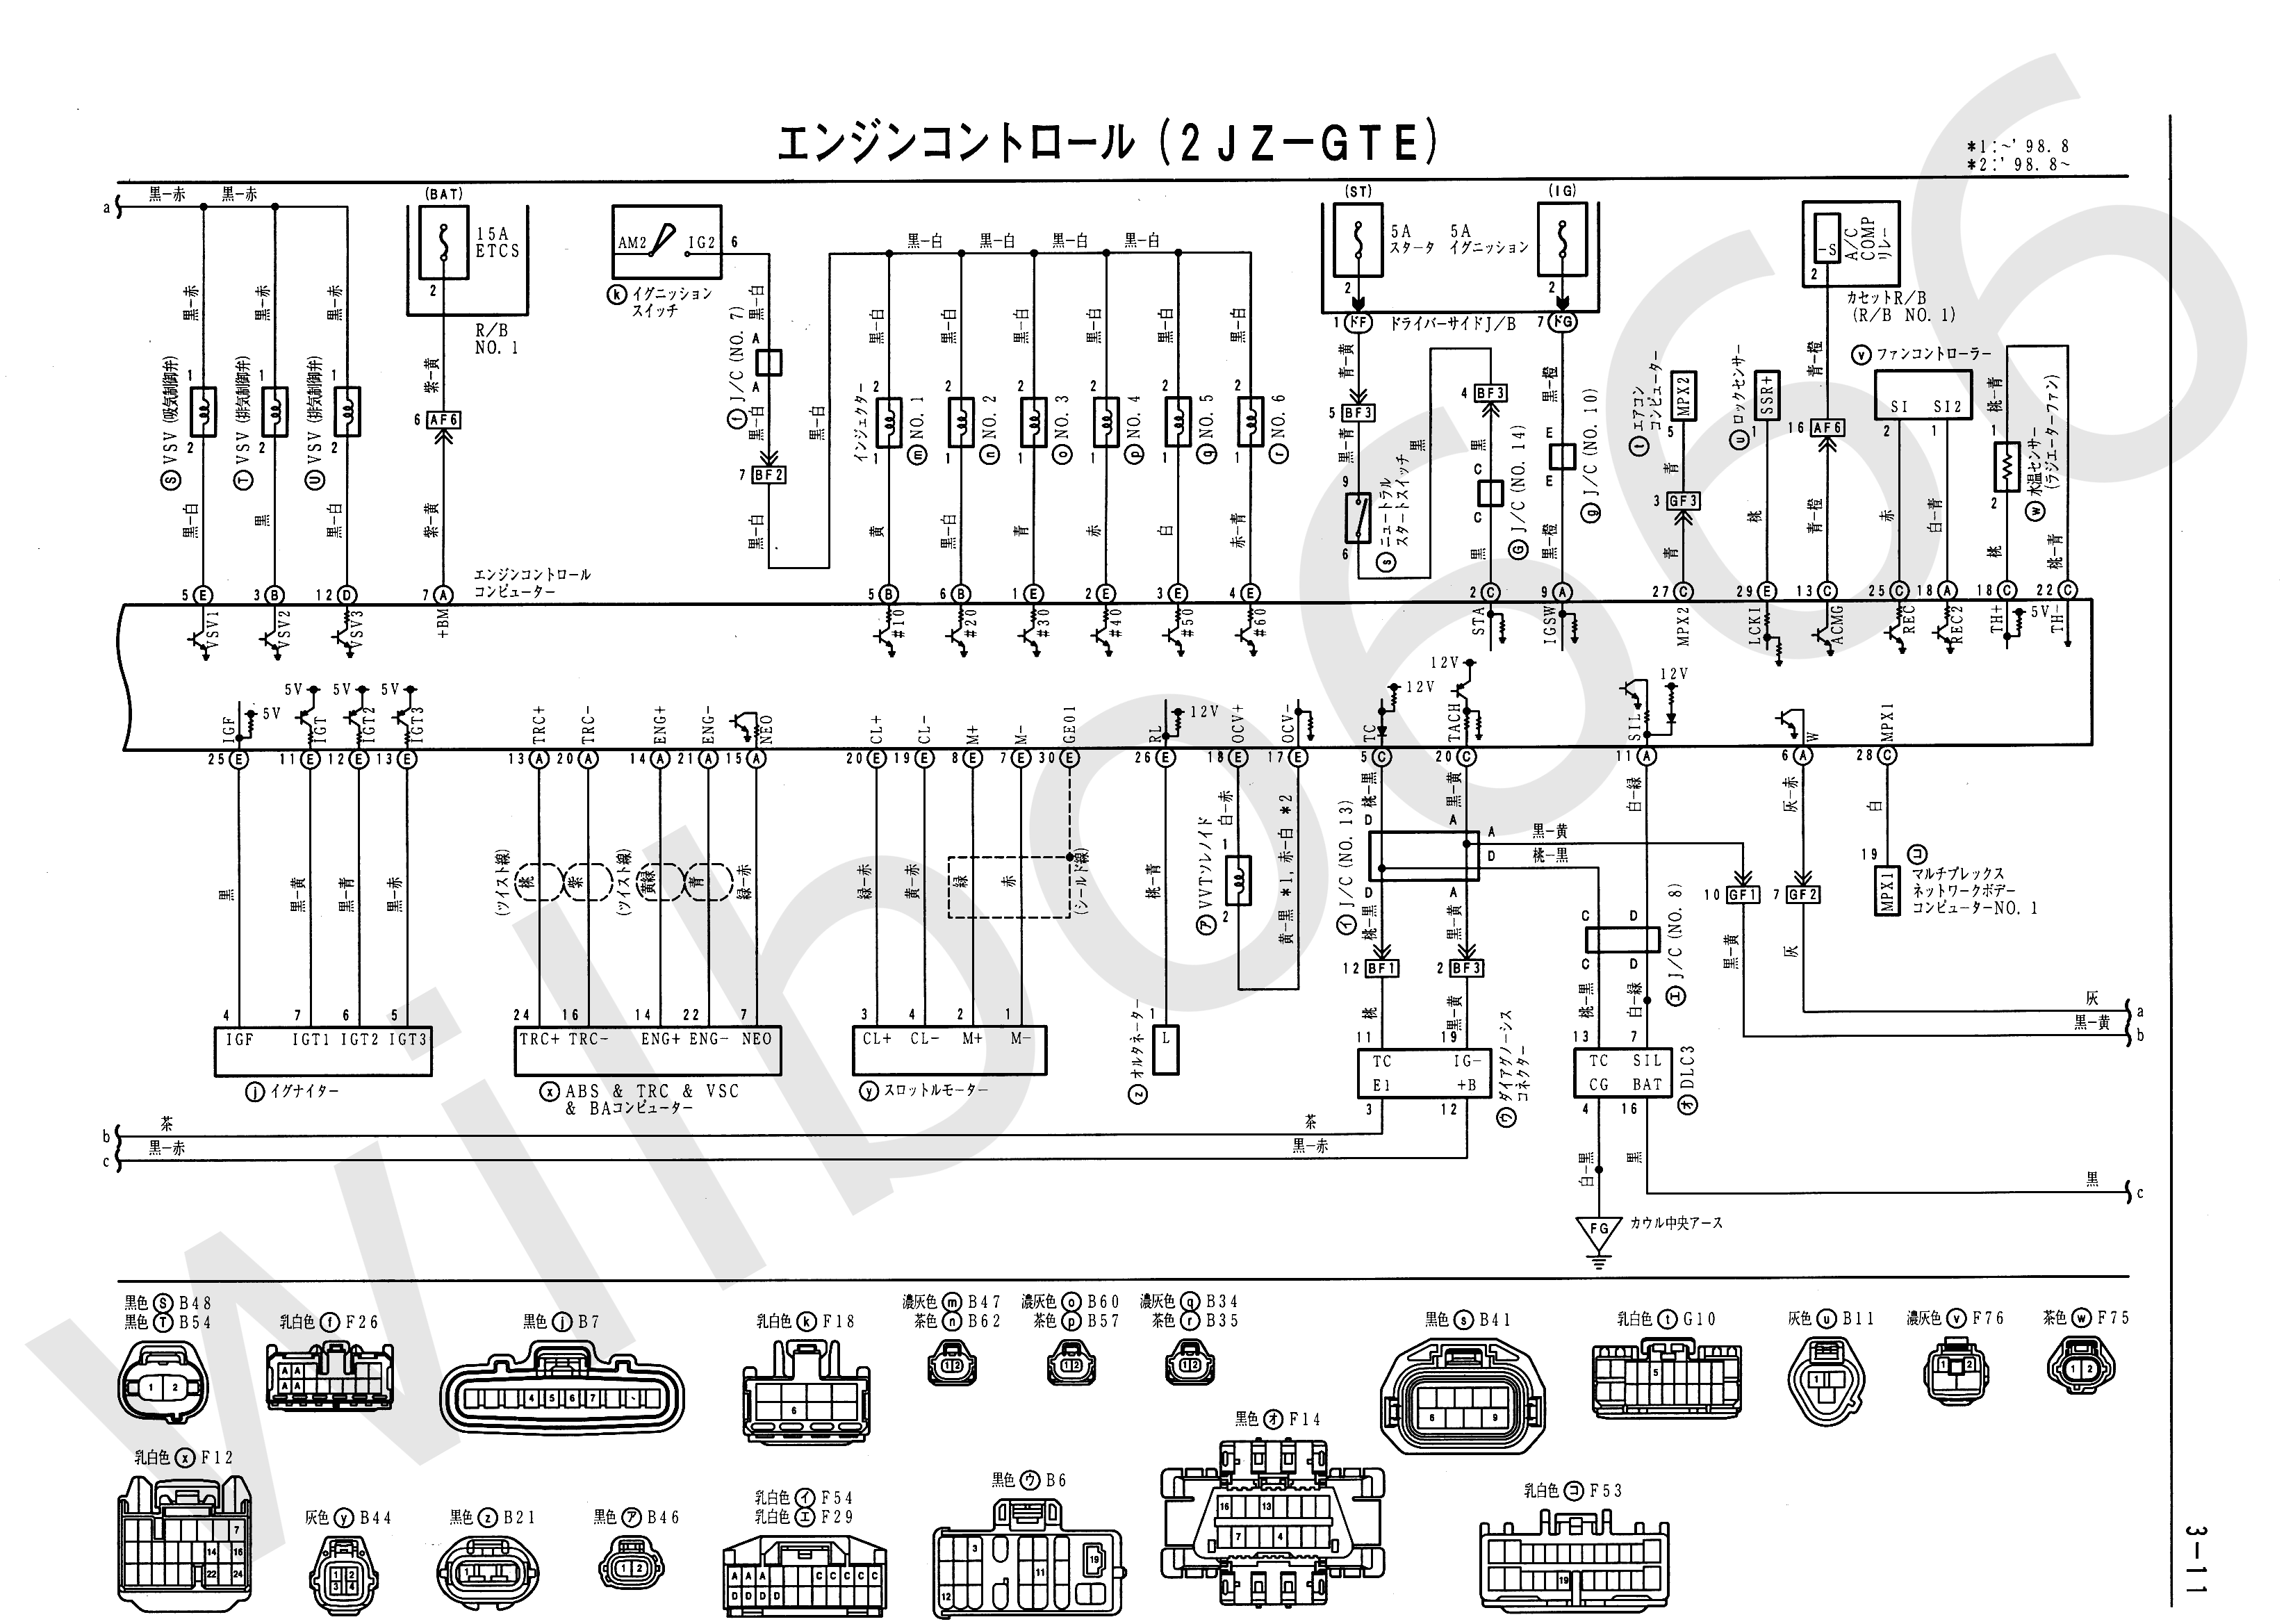 JZS161 Electrical Wiring Diagram 6748505 3 11 2jz wiring diagram 2jz wiring diagrams instruction  at love-stories.co